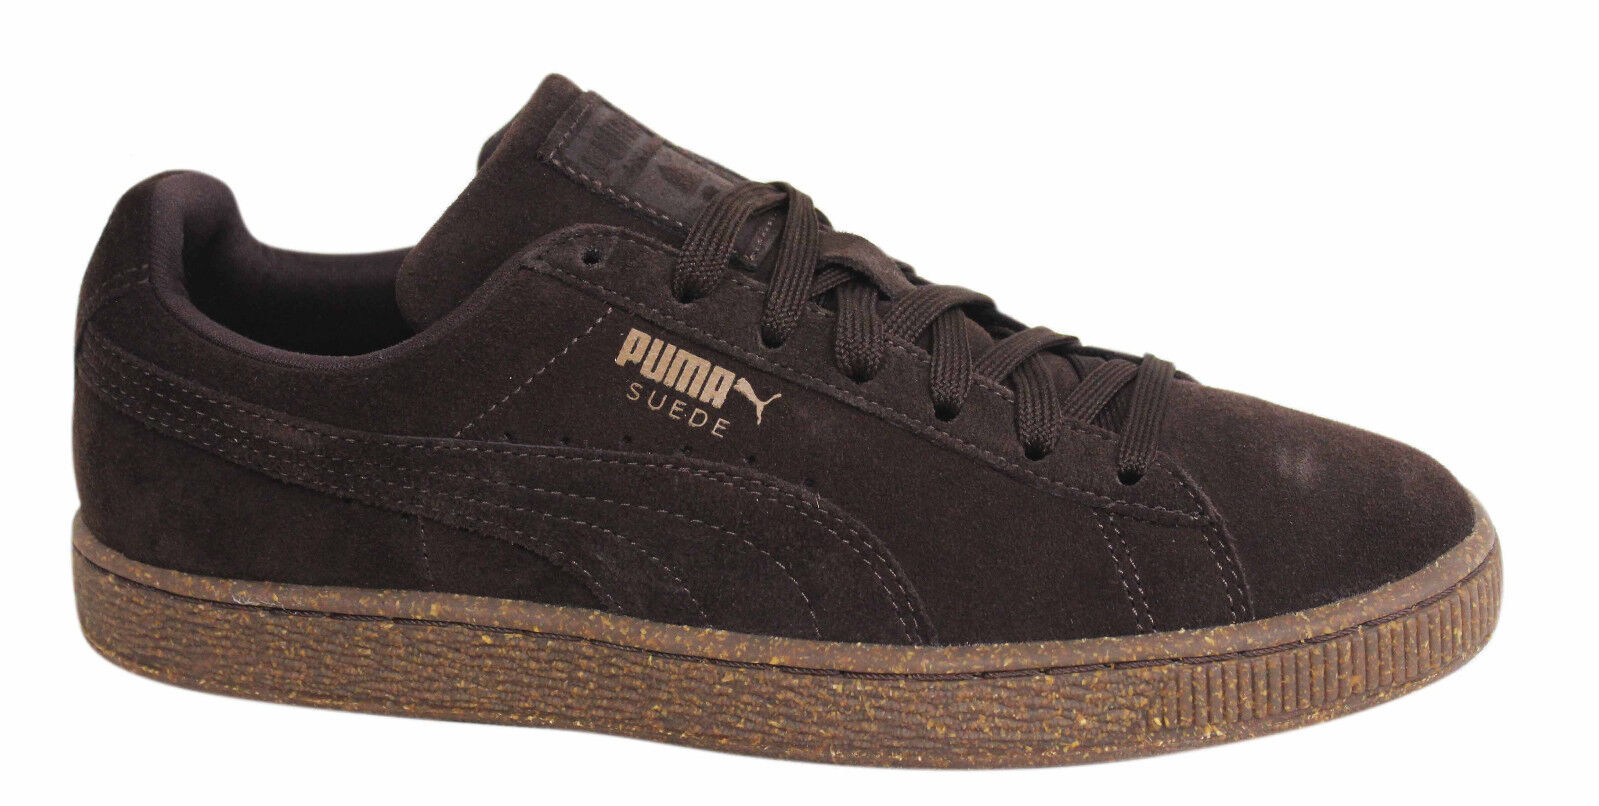 Puma Suede Classic IC Lace Up Uomo Chocolate D44 Brown Trainers 362099 03 D44 Chocolate d309a4